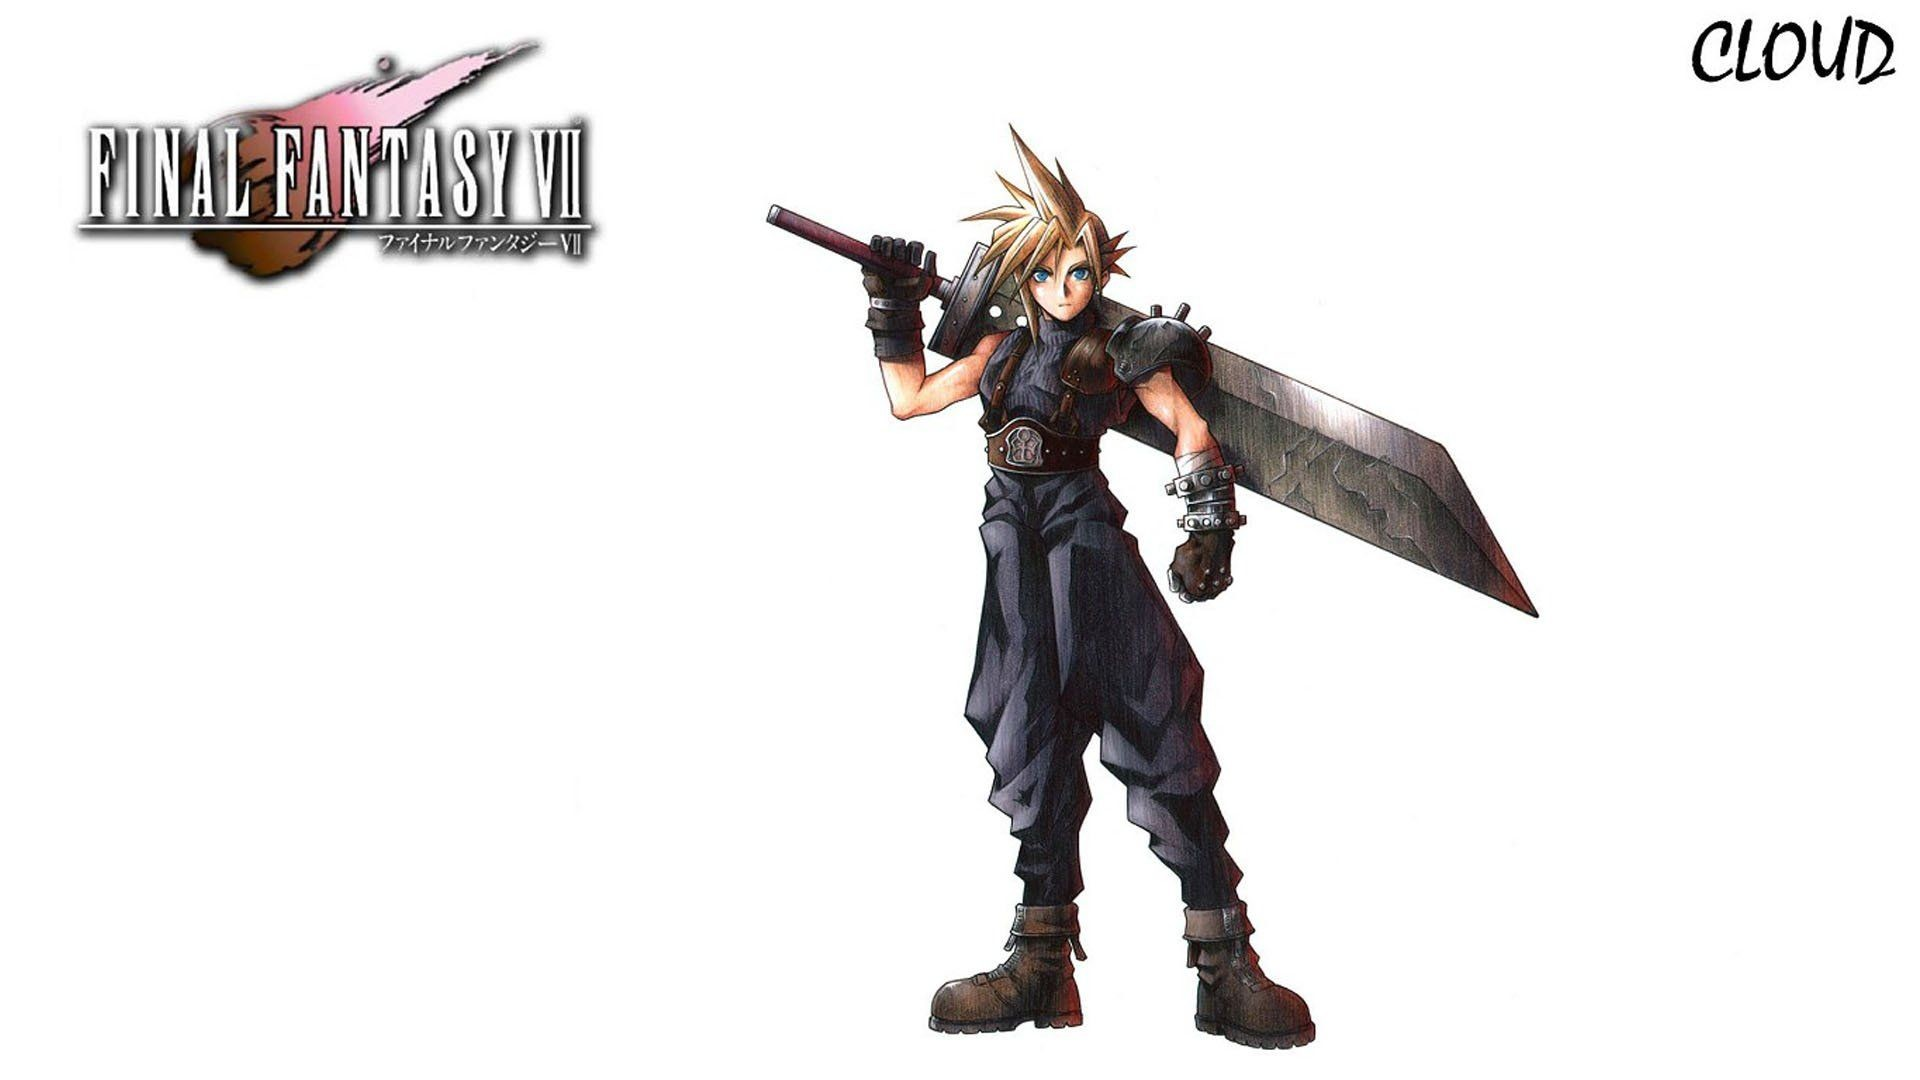 1920x1080 Final Fantasy VII video games Cloud Strife wallpaper